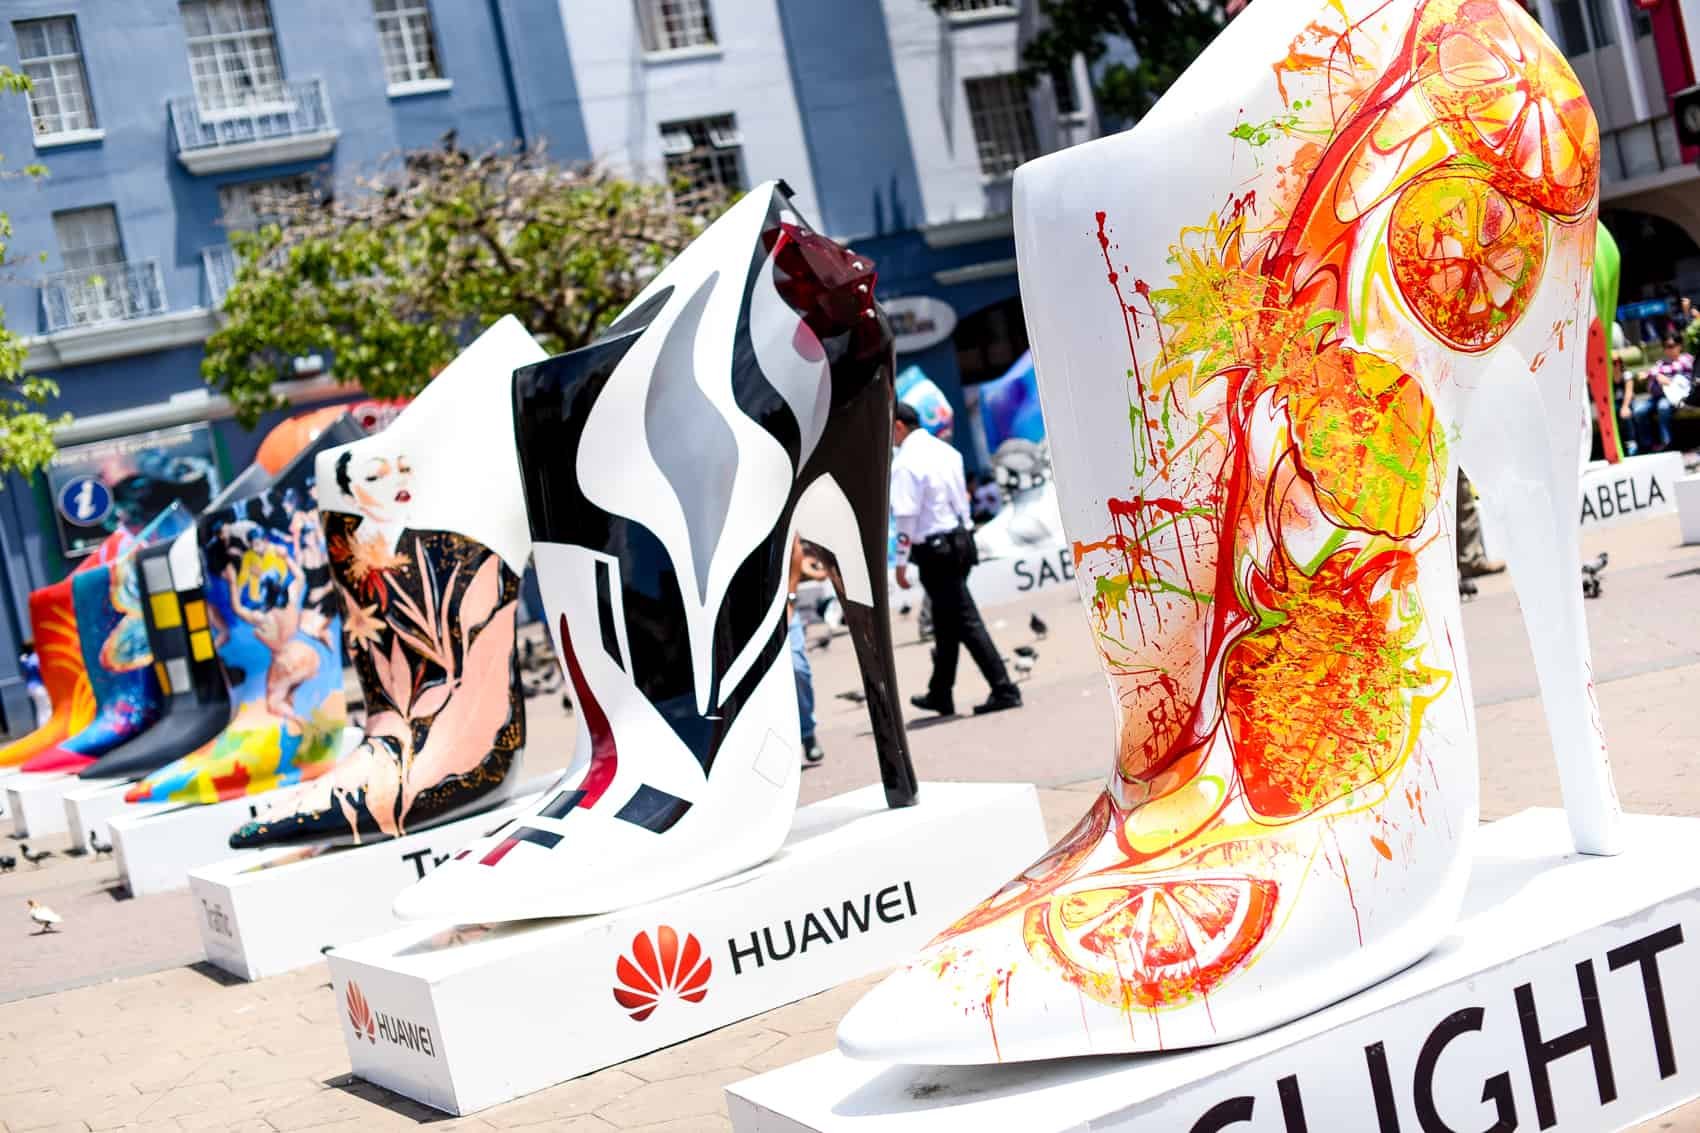 The Urbana Fashion Street Art 2015 exhibit presents 24 high heel shoes 2,5 mts high, 2,5 mts long and 1,5 mts width intervened by 20 Costa Rican artists from June 30 to July 14.